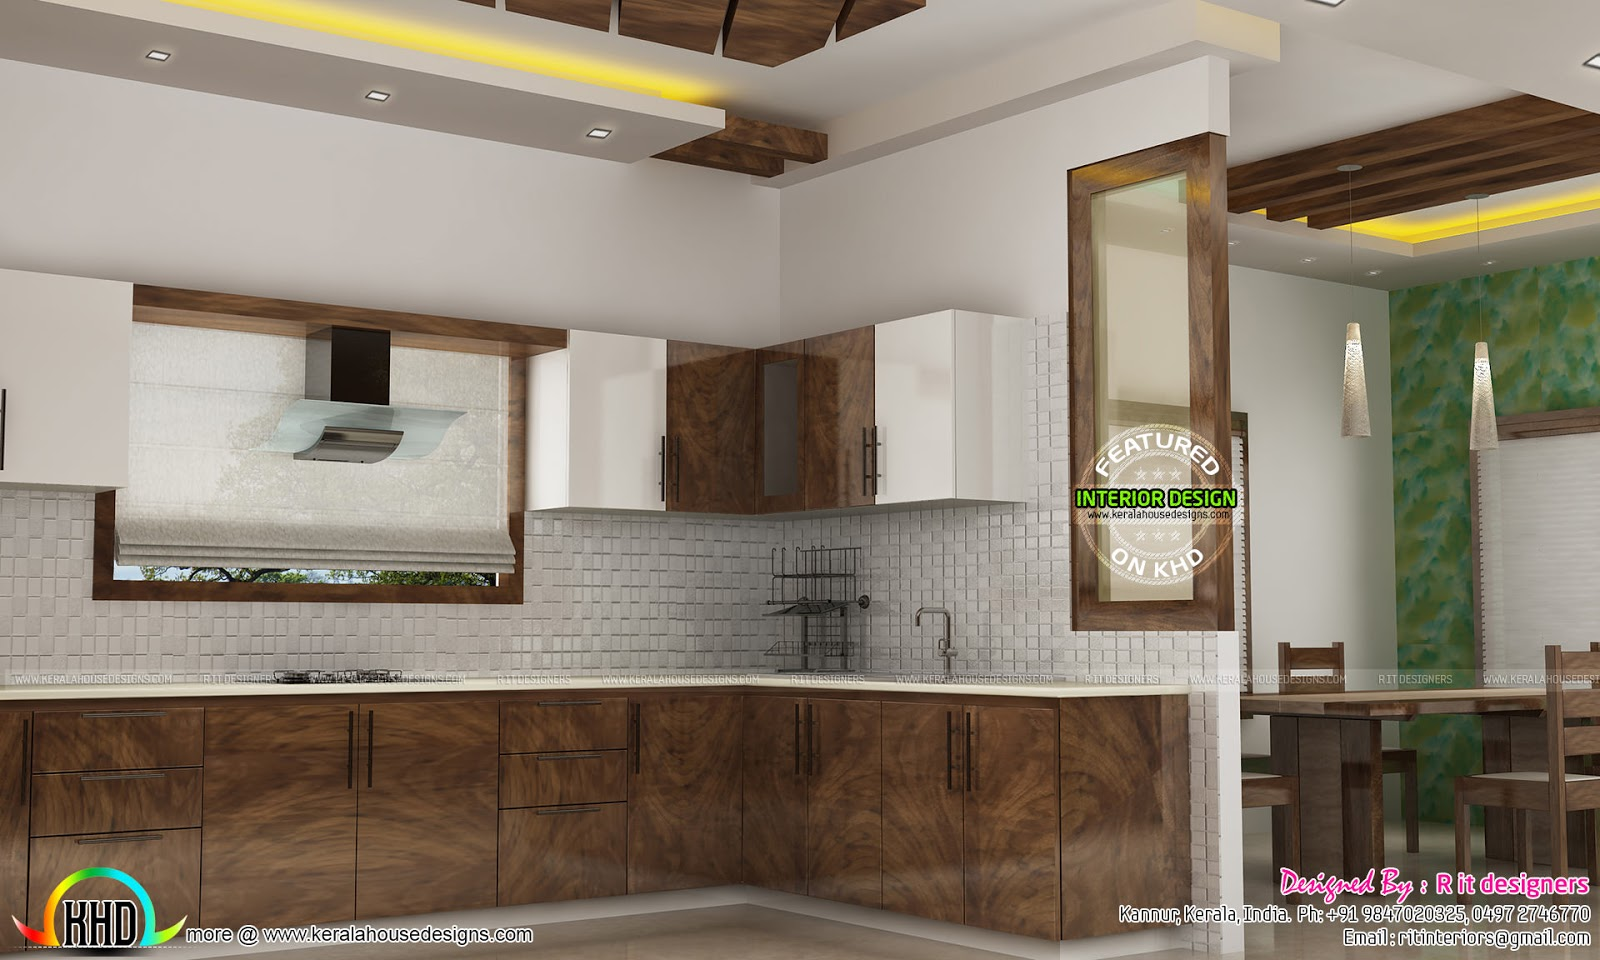 indian-kitchen-interior.jpg